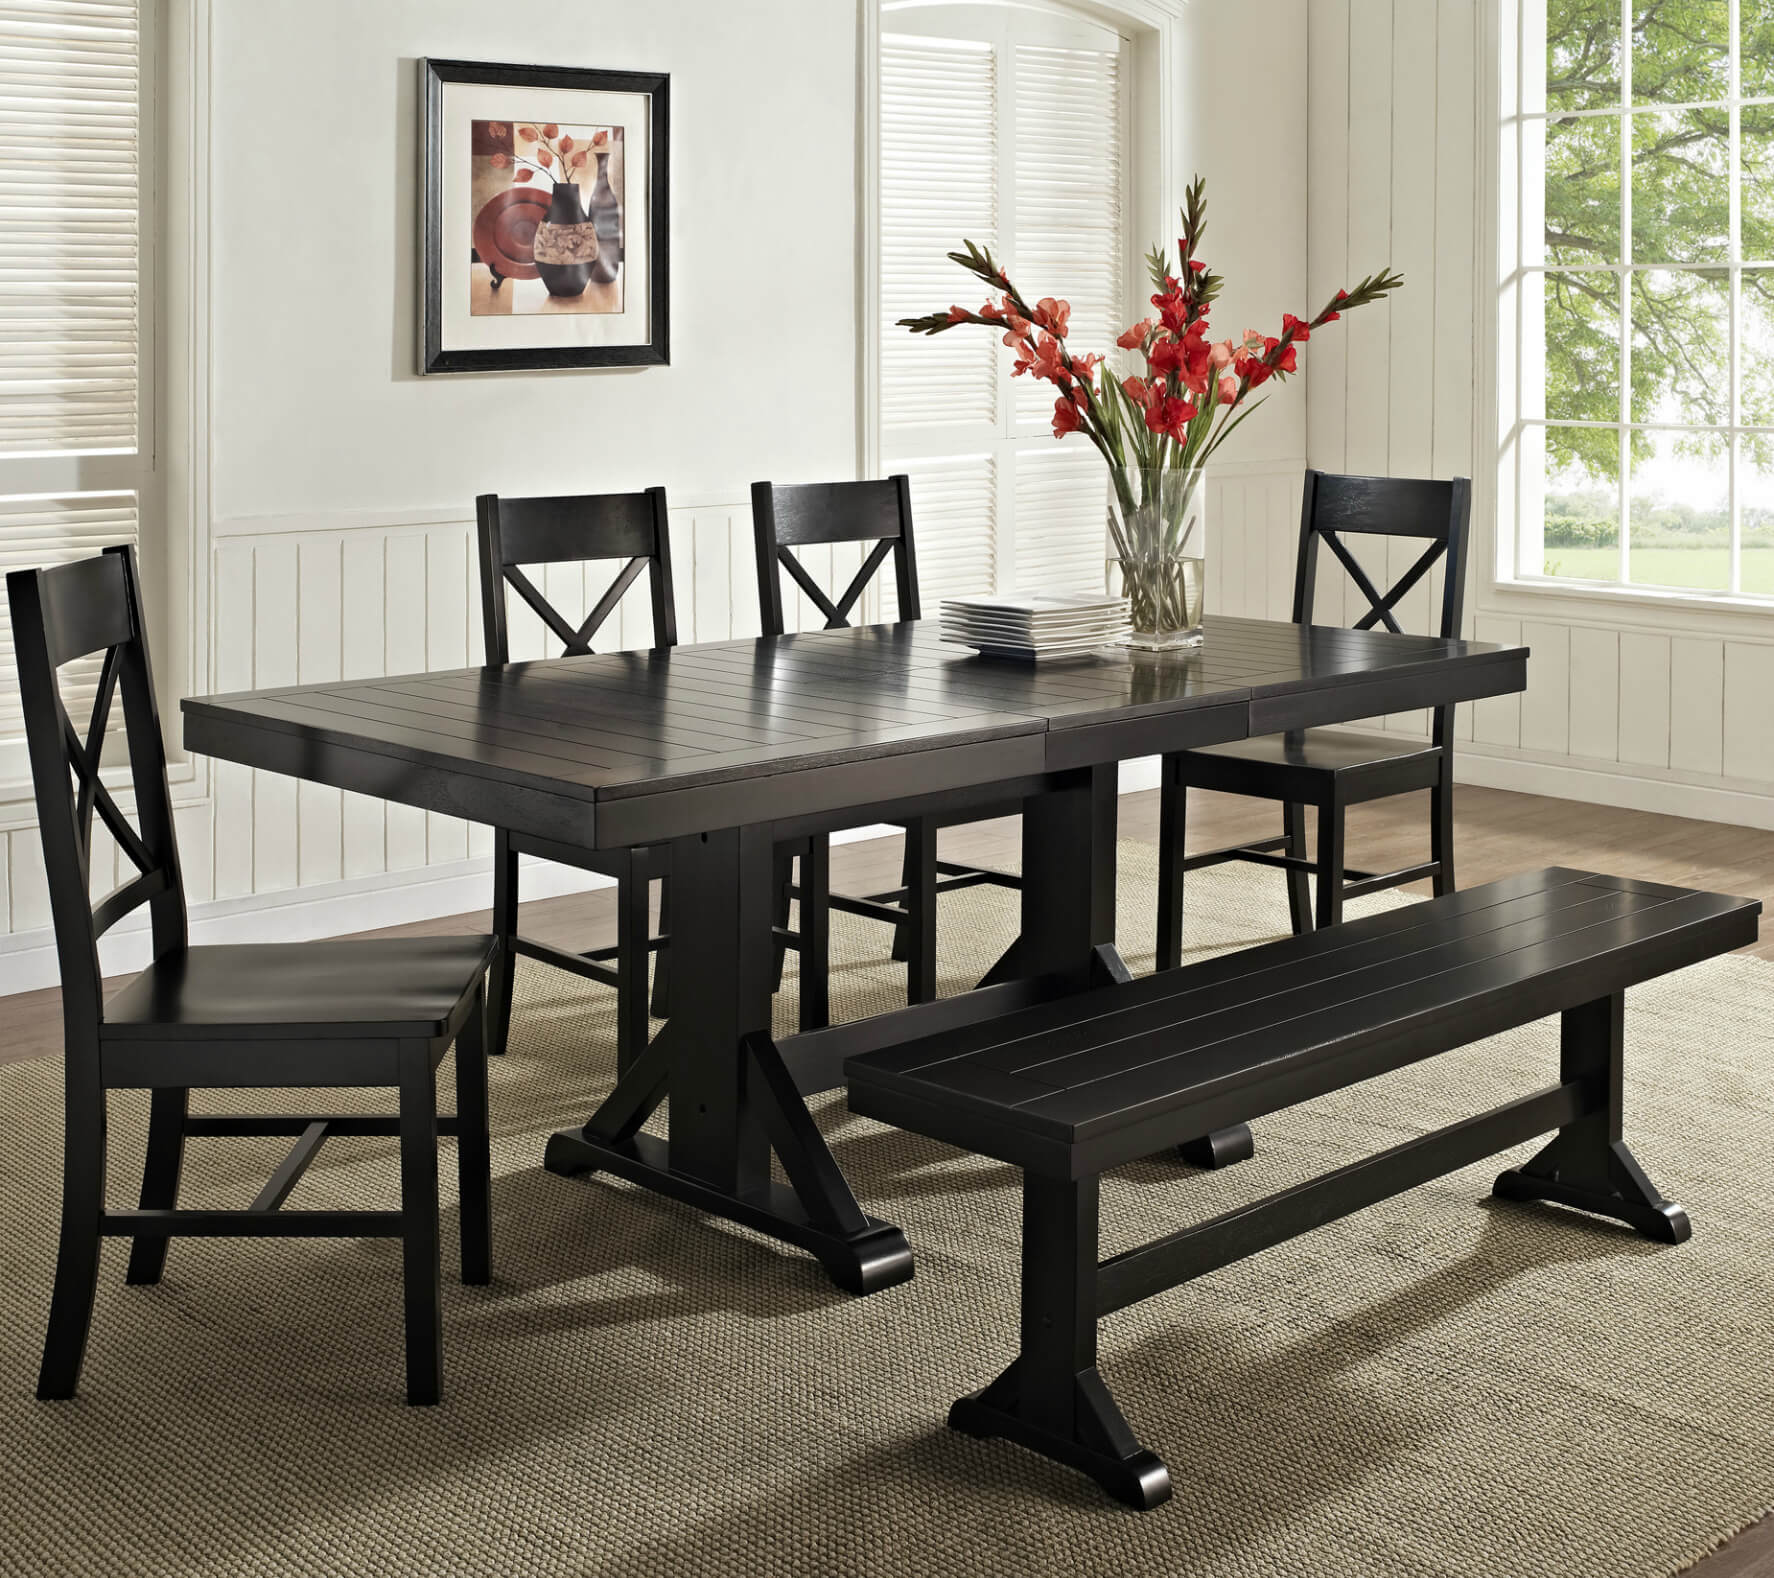 26 big small dining room sets with bench seating. Black Bedroom Furniture Sets. Home Design Ideas